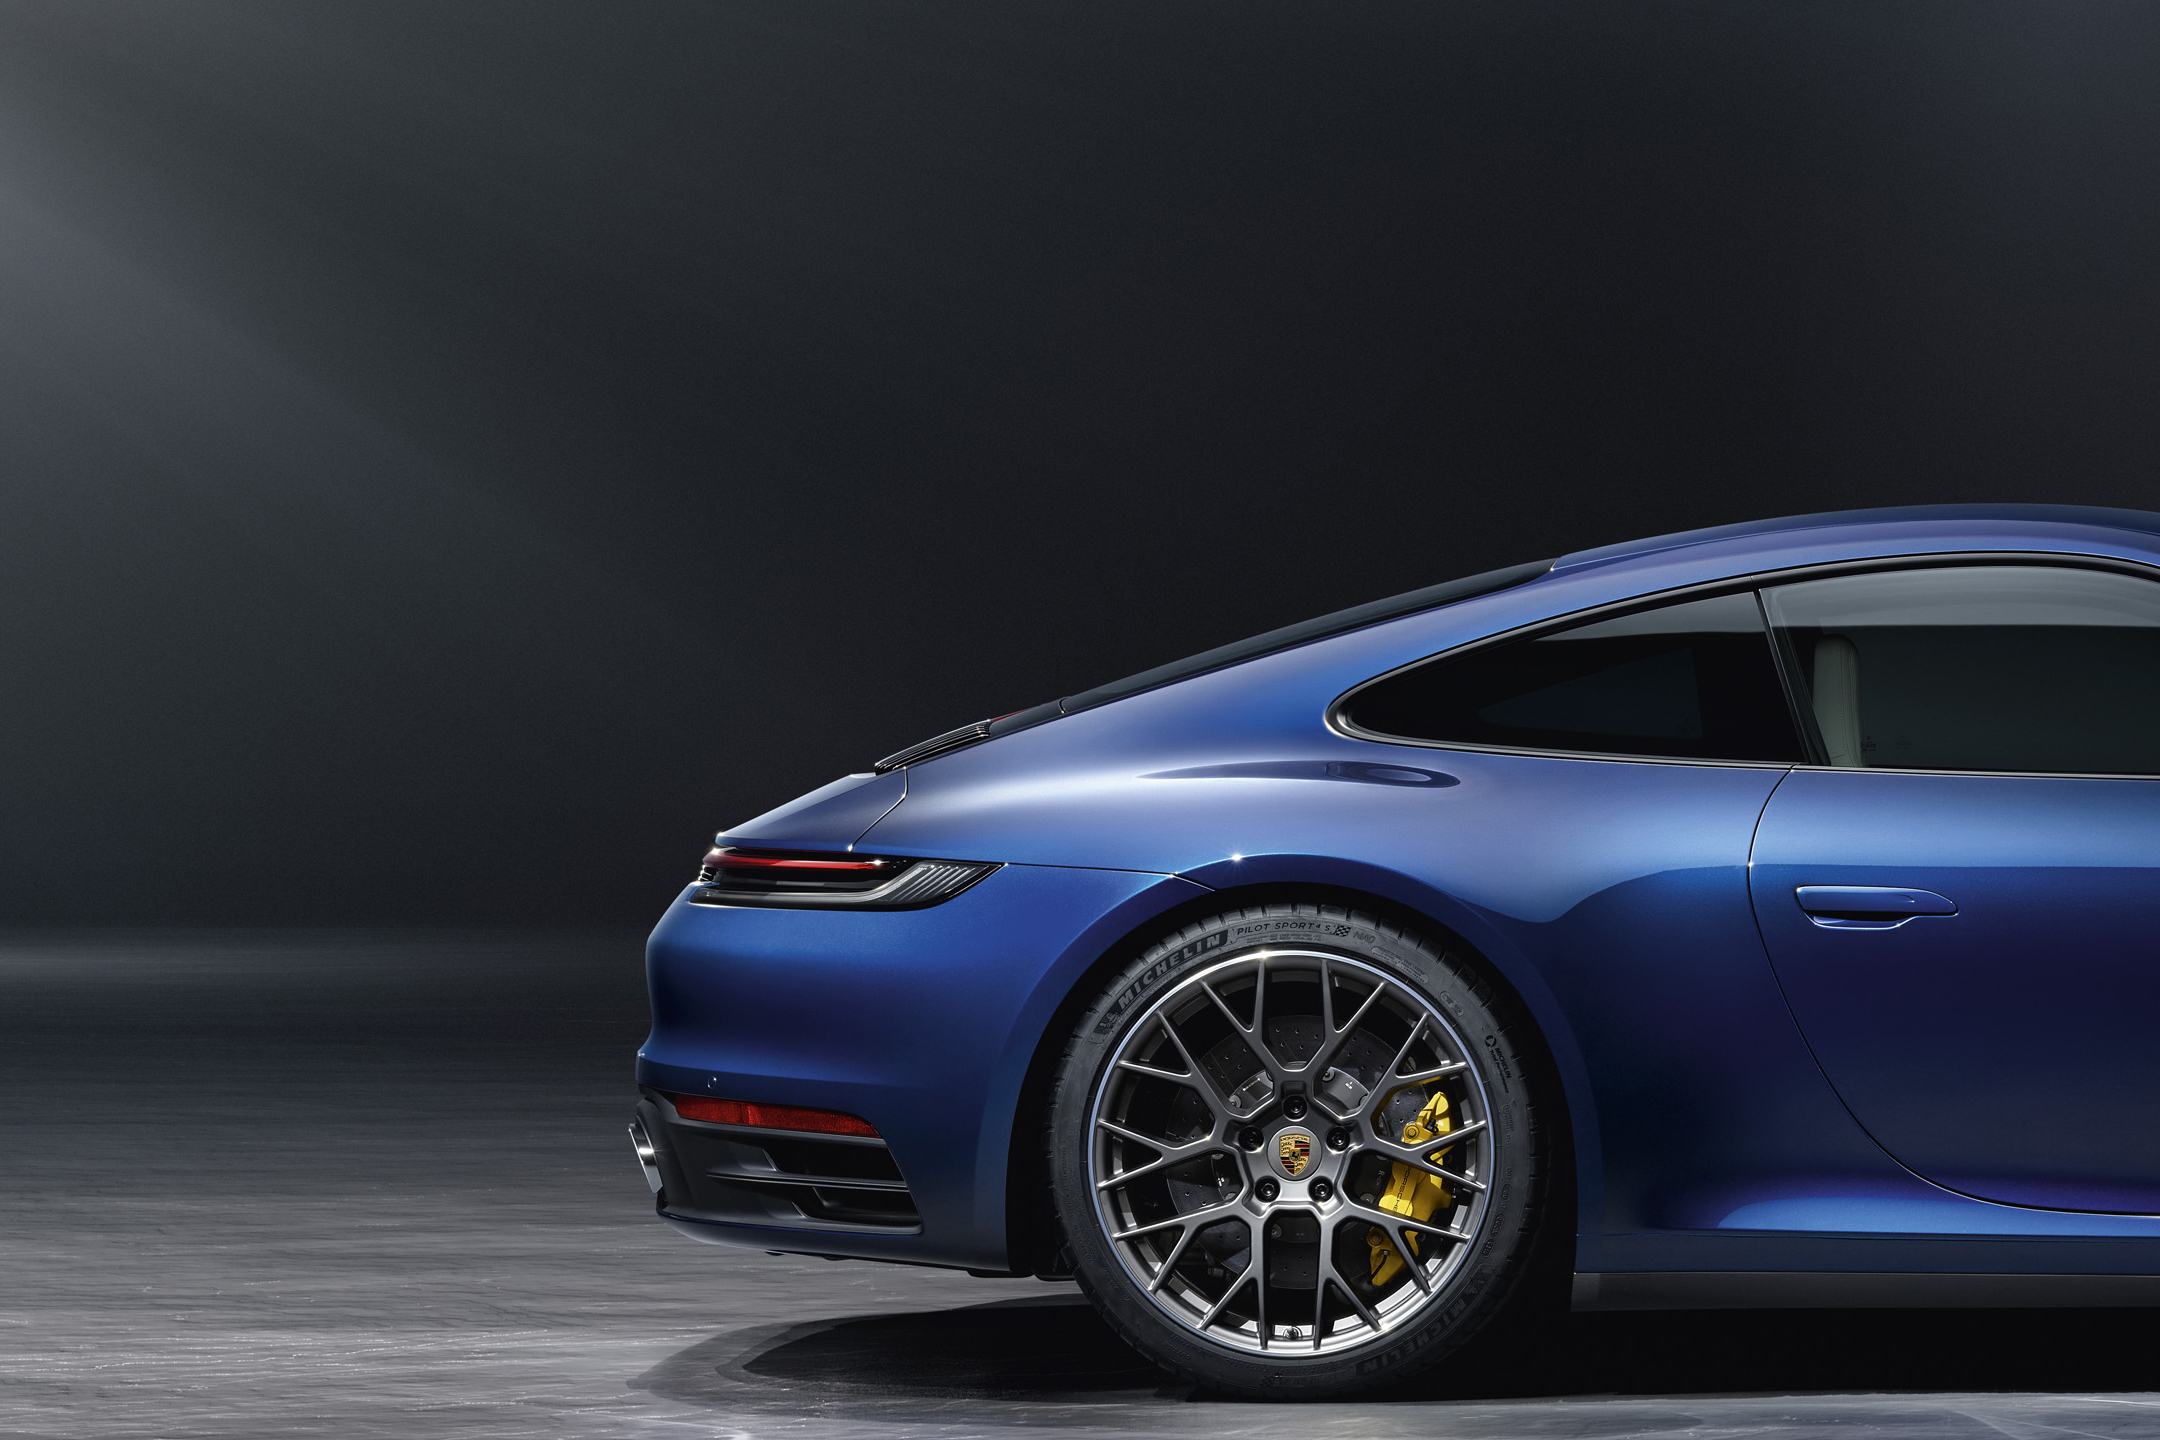 Porsche 911 type 992 Carrera 4S - 2018 - rear wheel